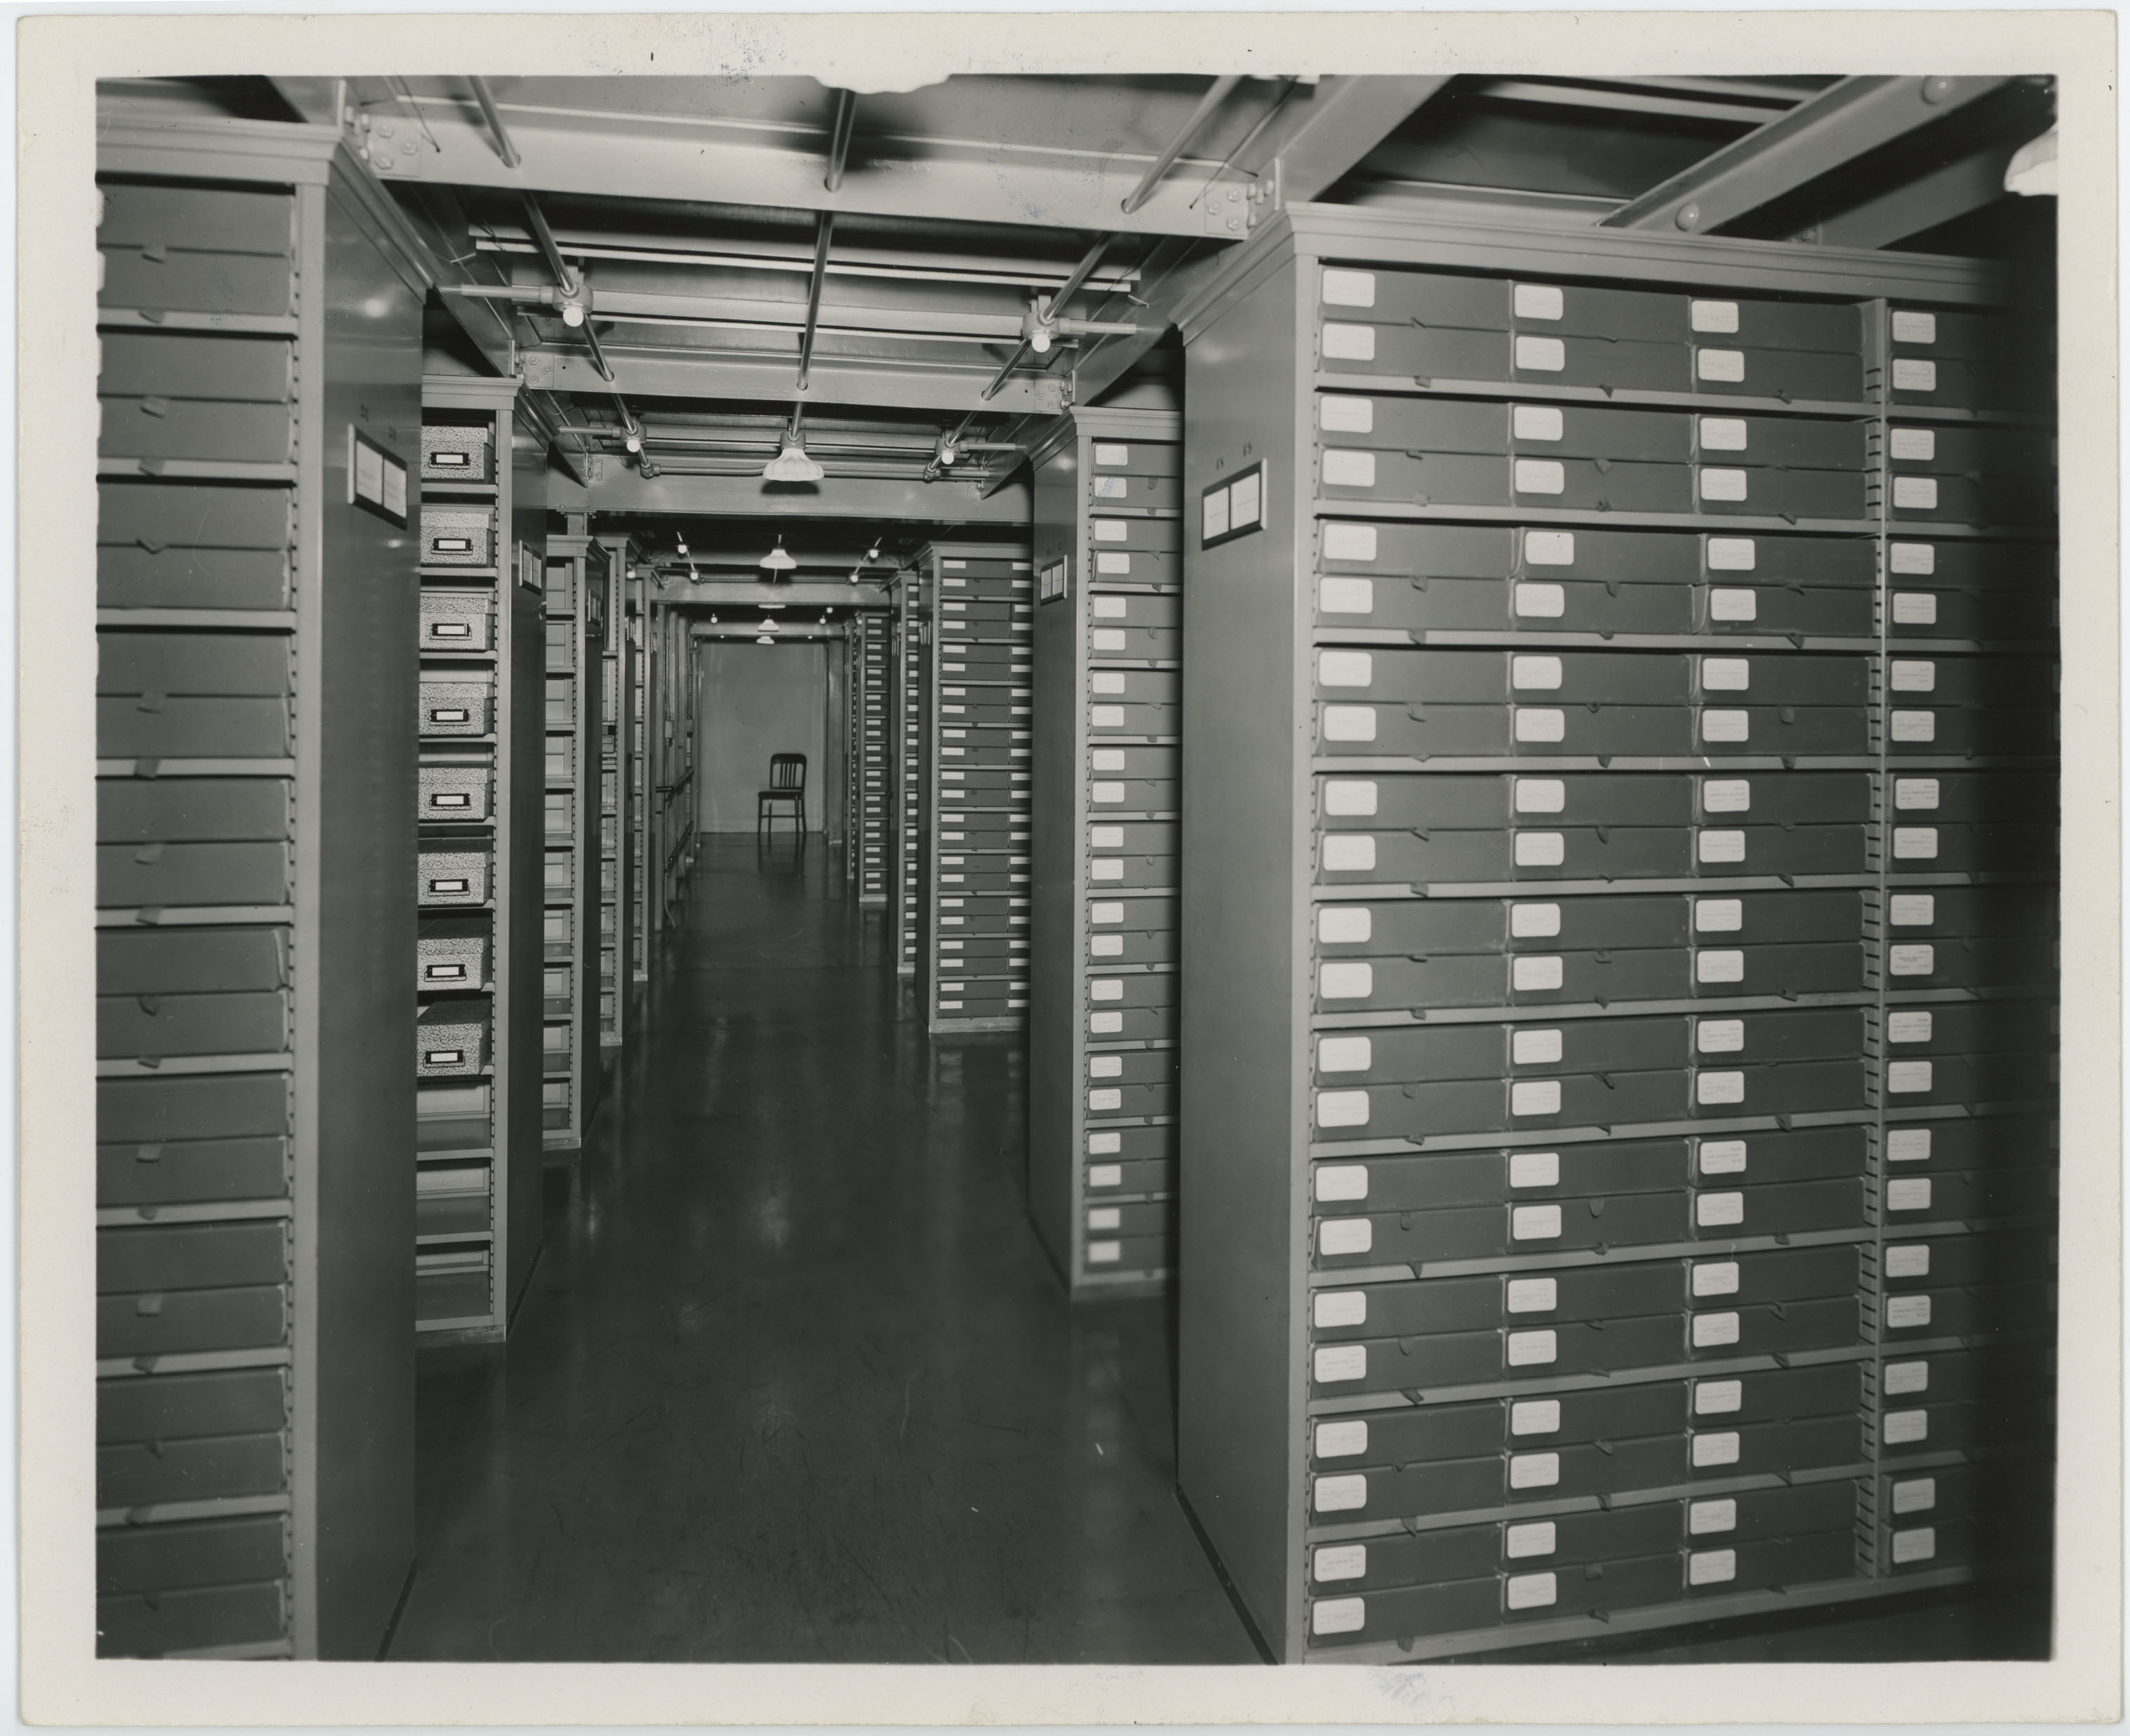 Historic view of FDR Library Archival Stacks